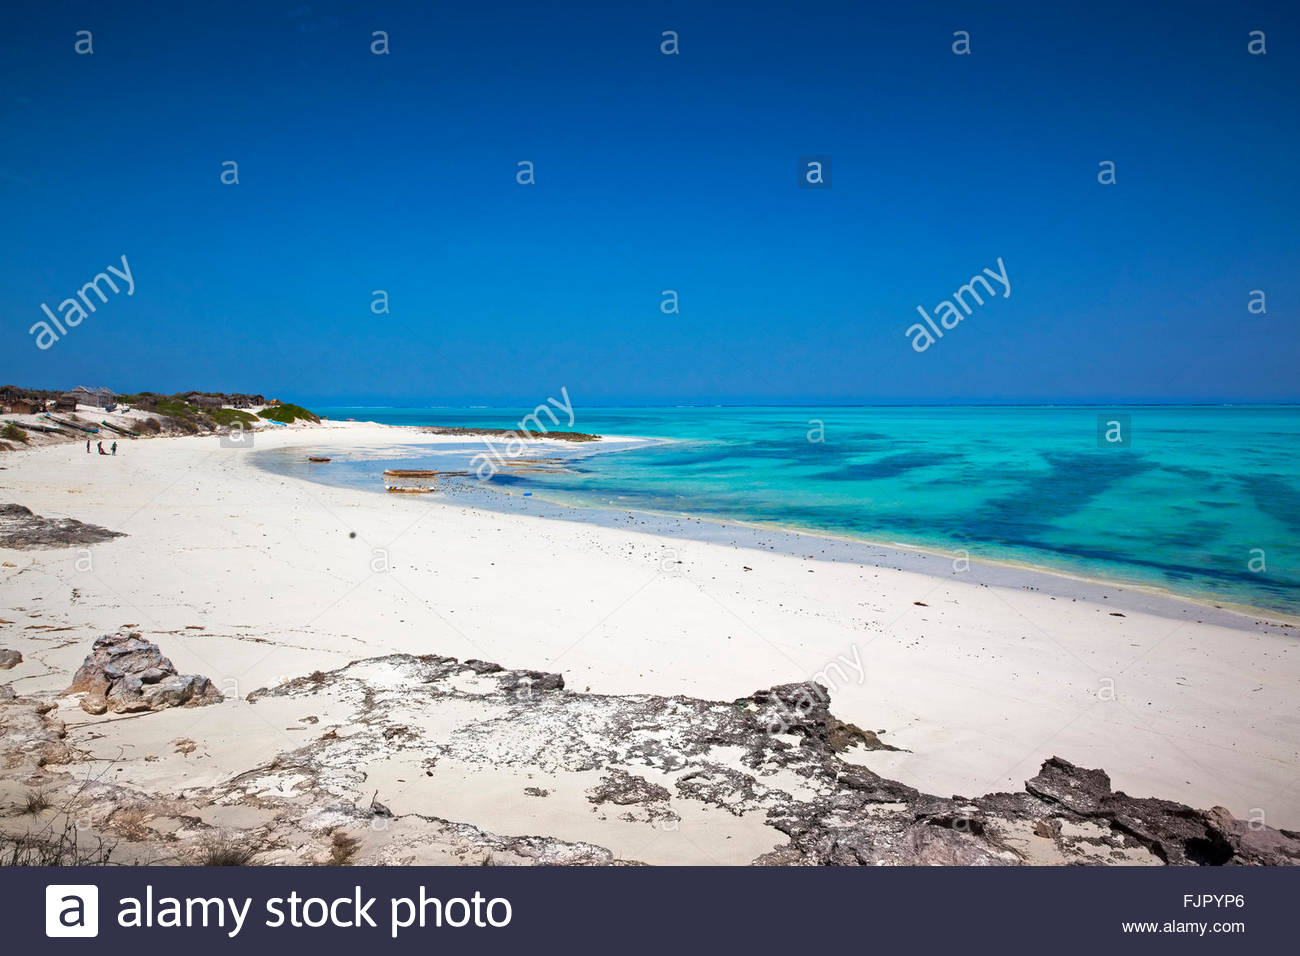 Beach with turquoise water, West Coast, Madagascar - Stock Image